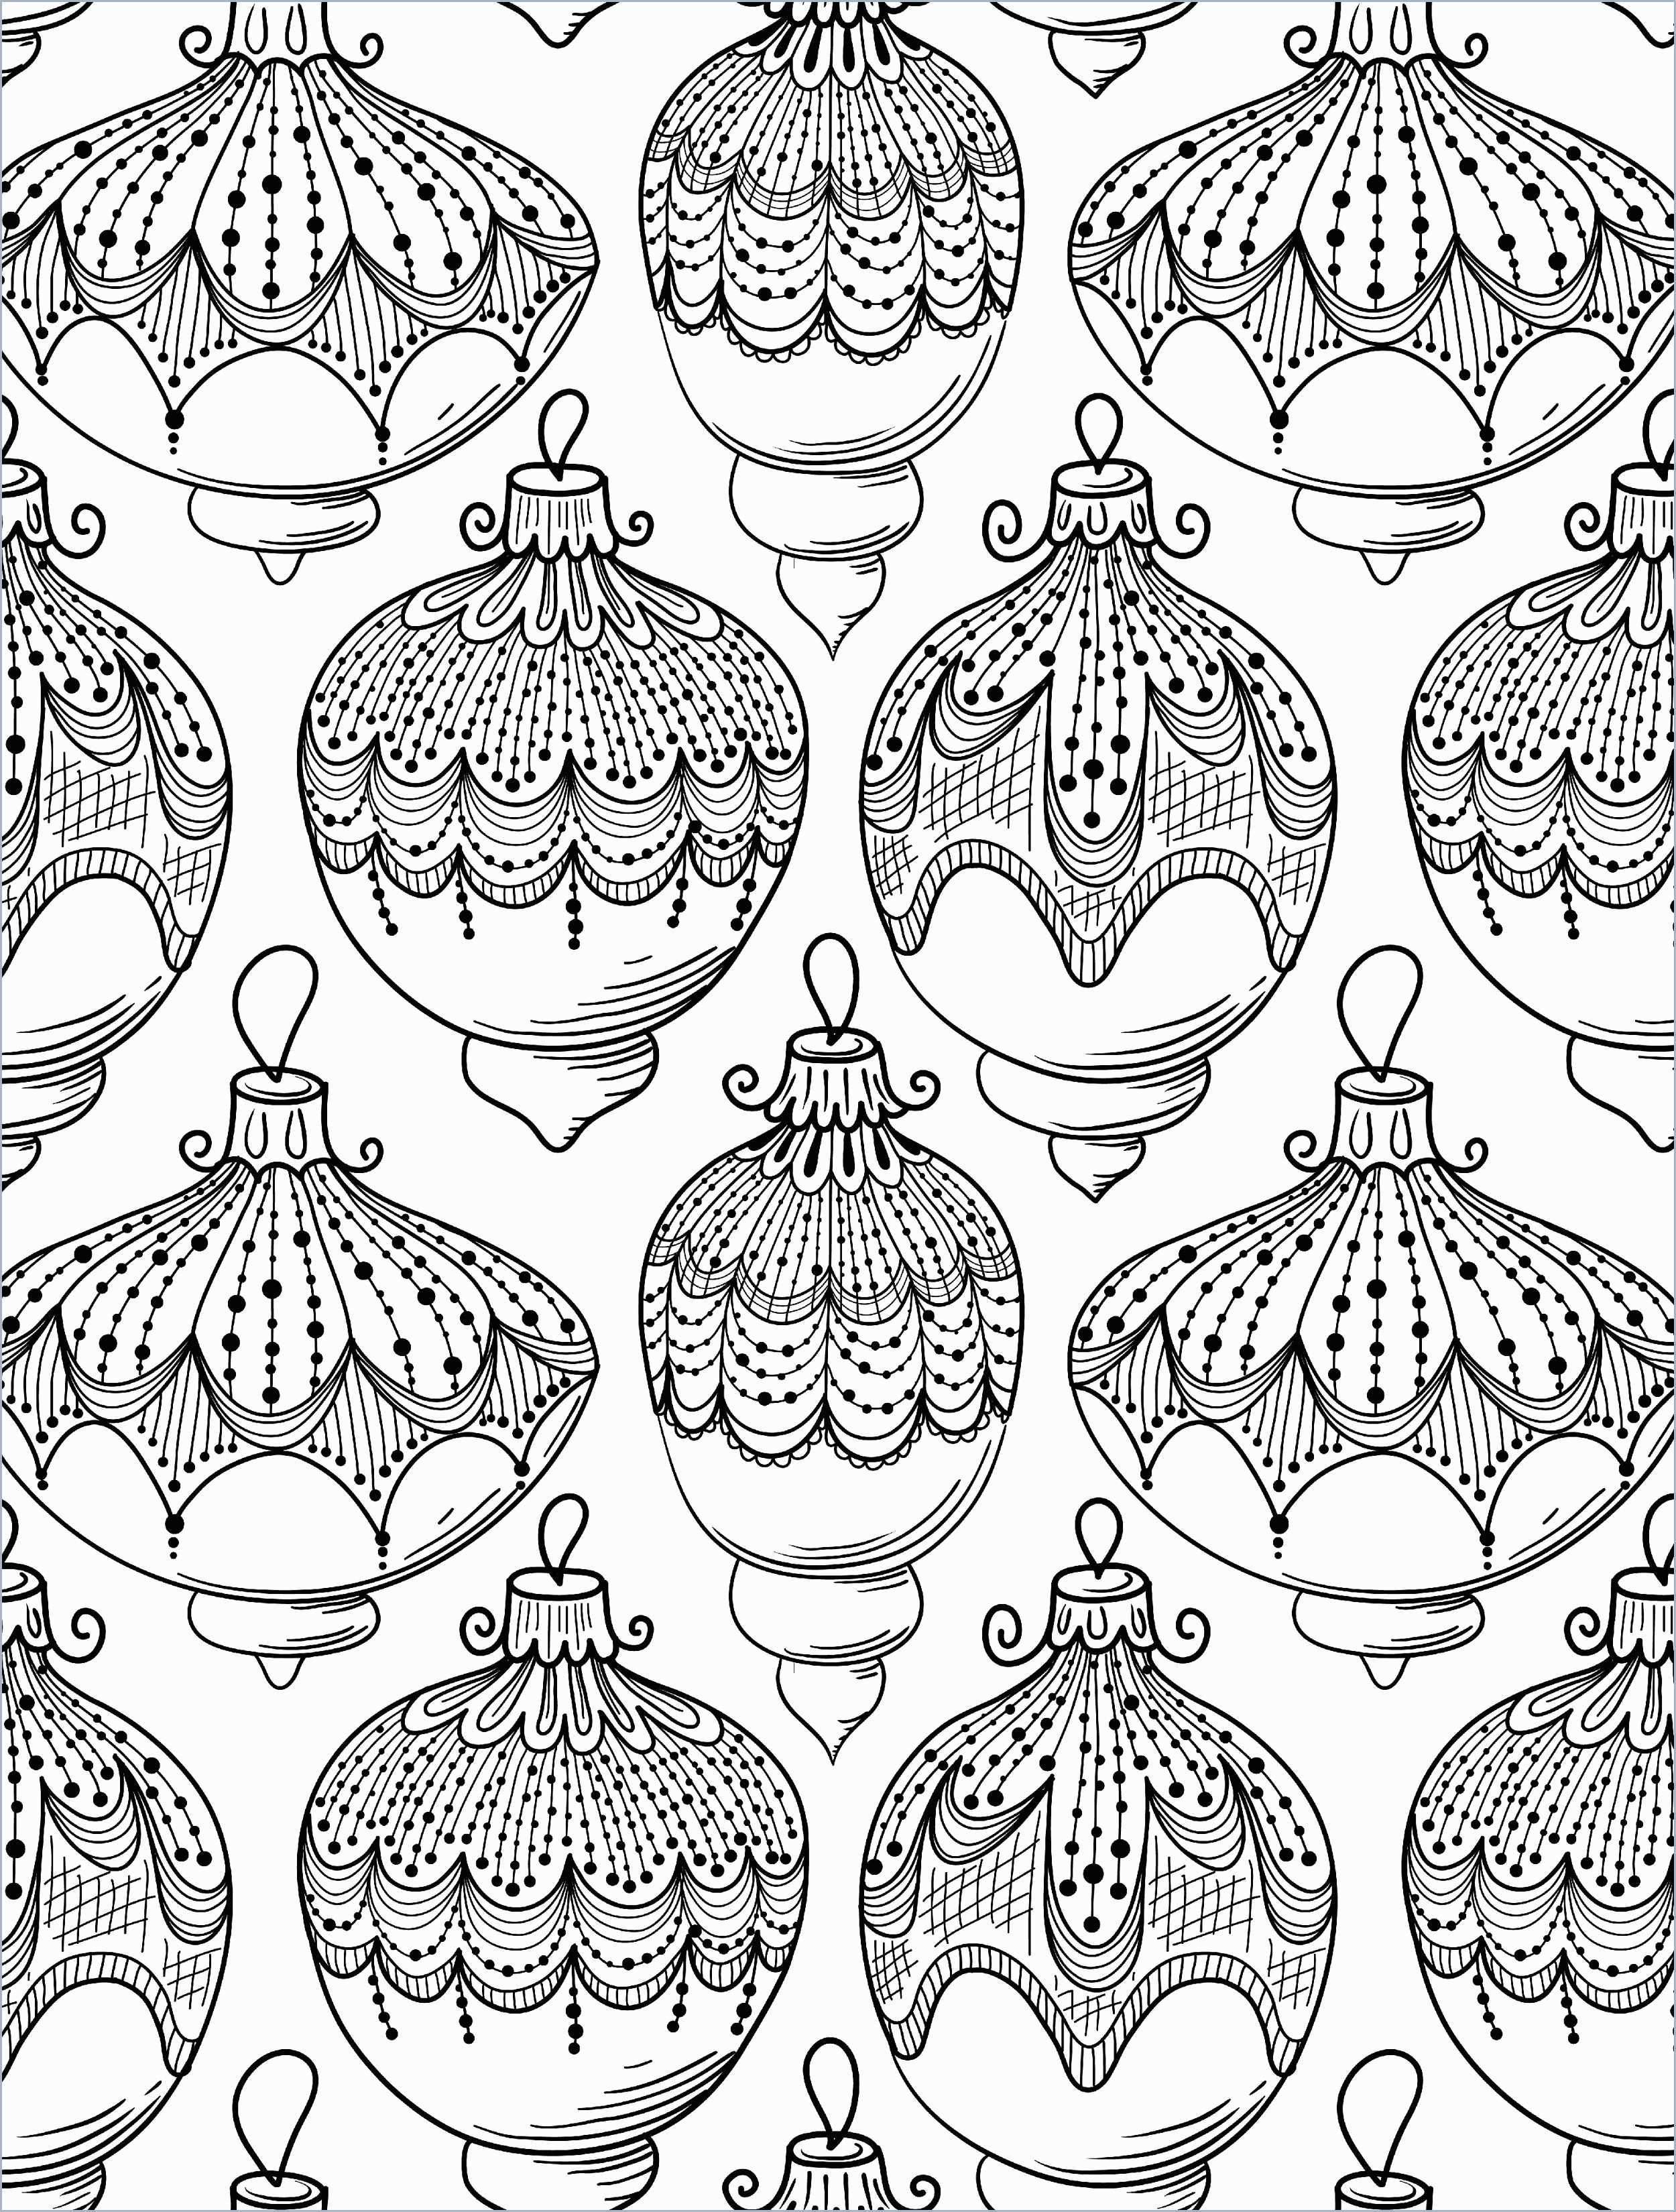 Christmas Coloring Pages For Adults Printable Free With 50 Wonderfully Images Of Online